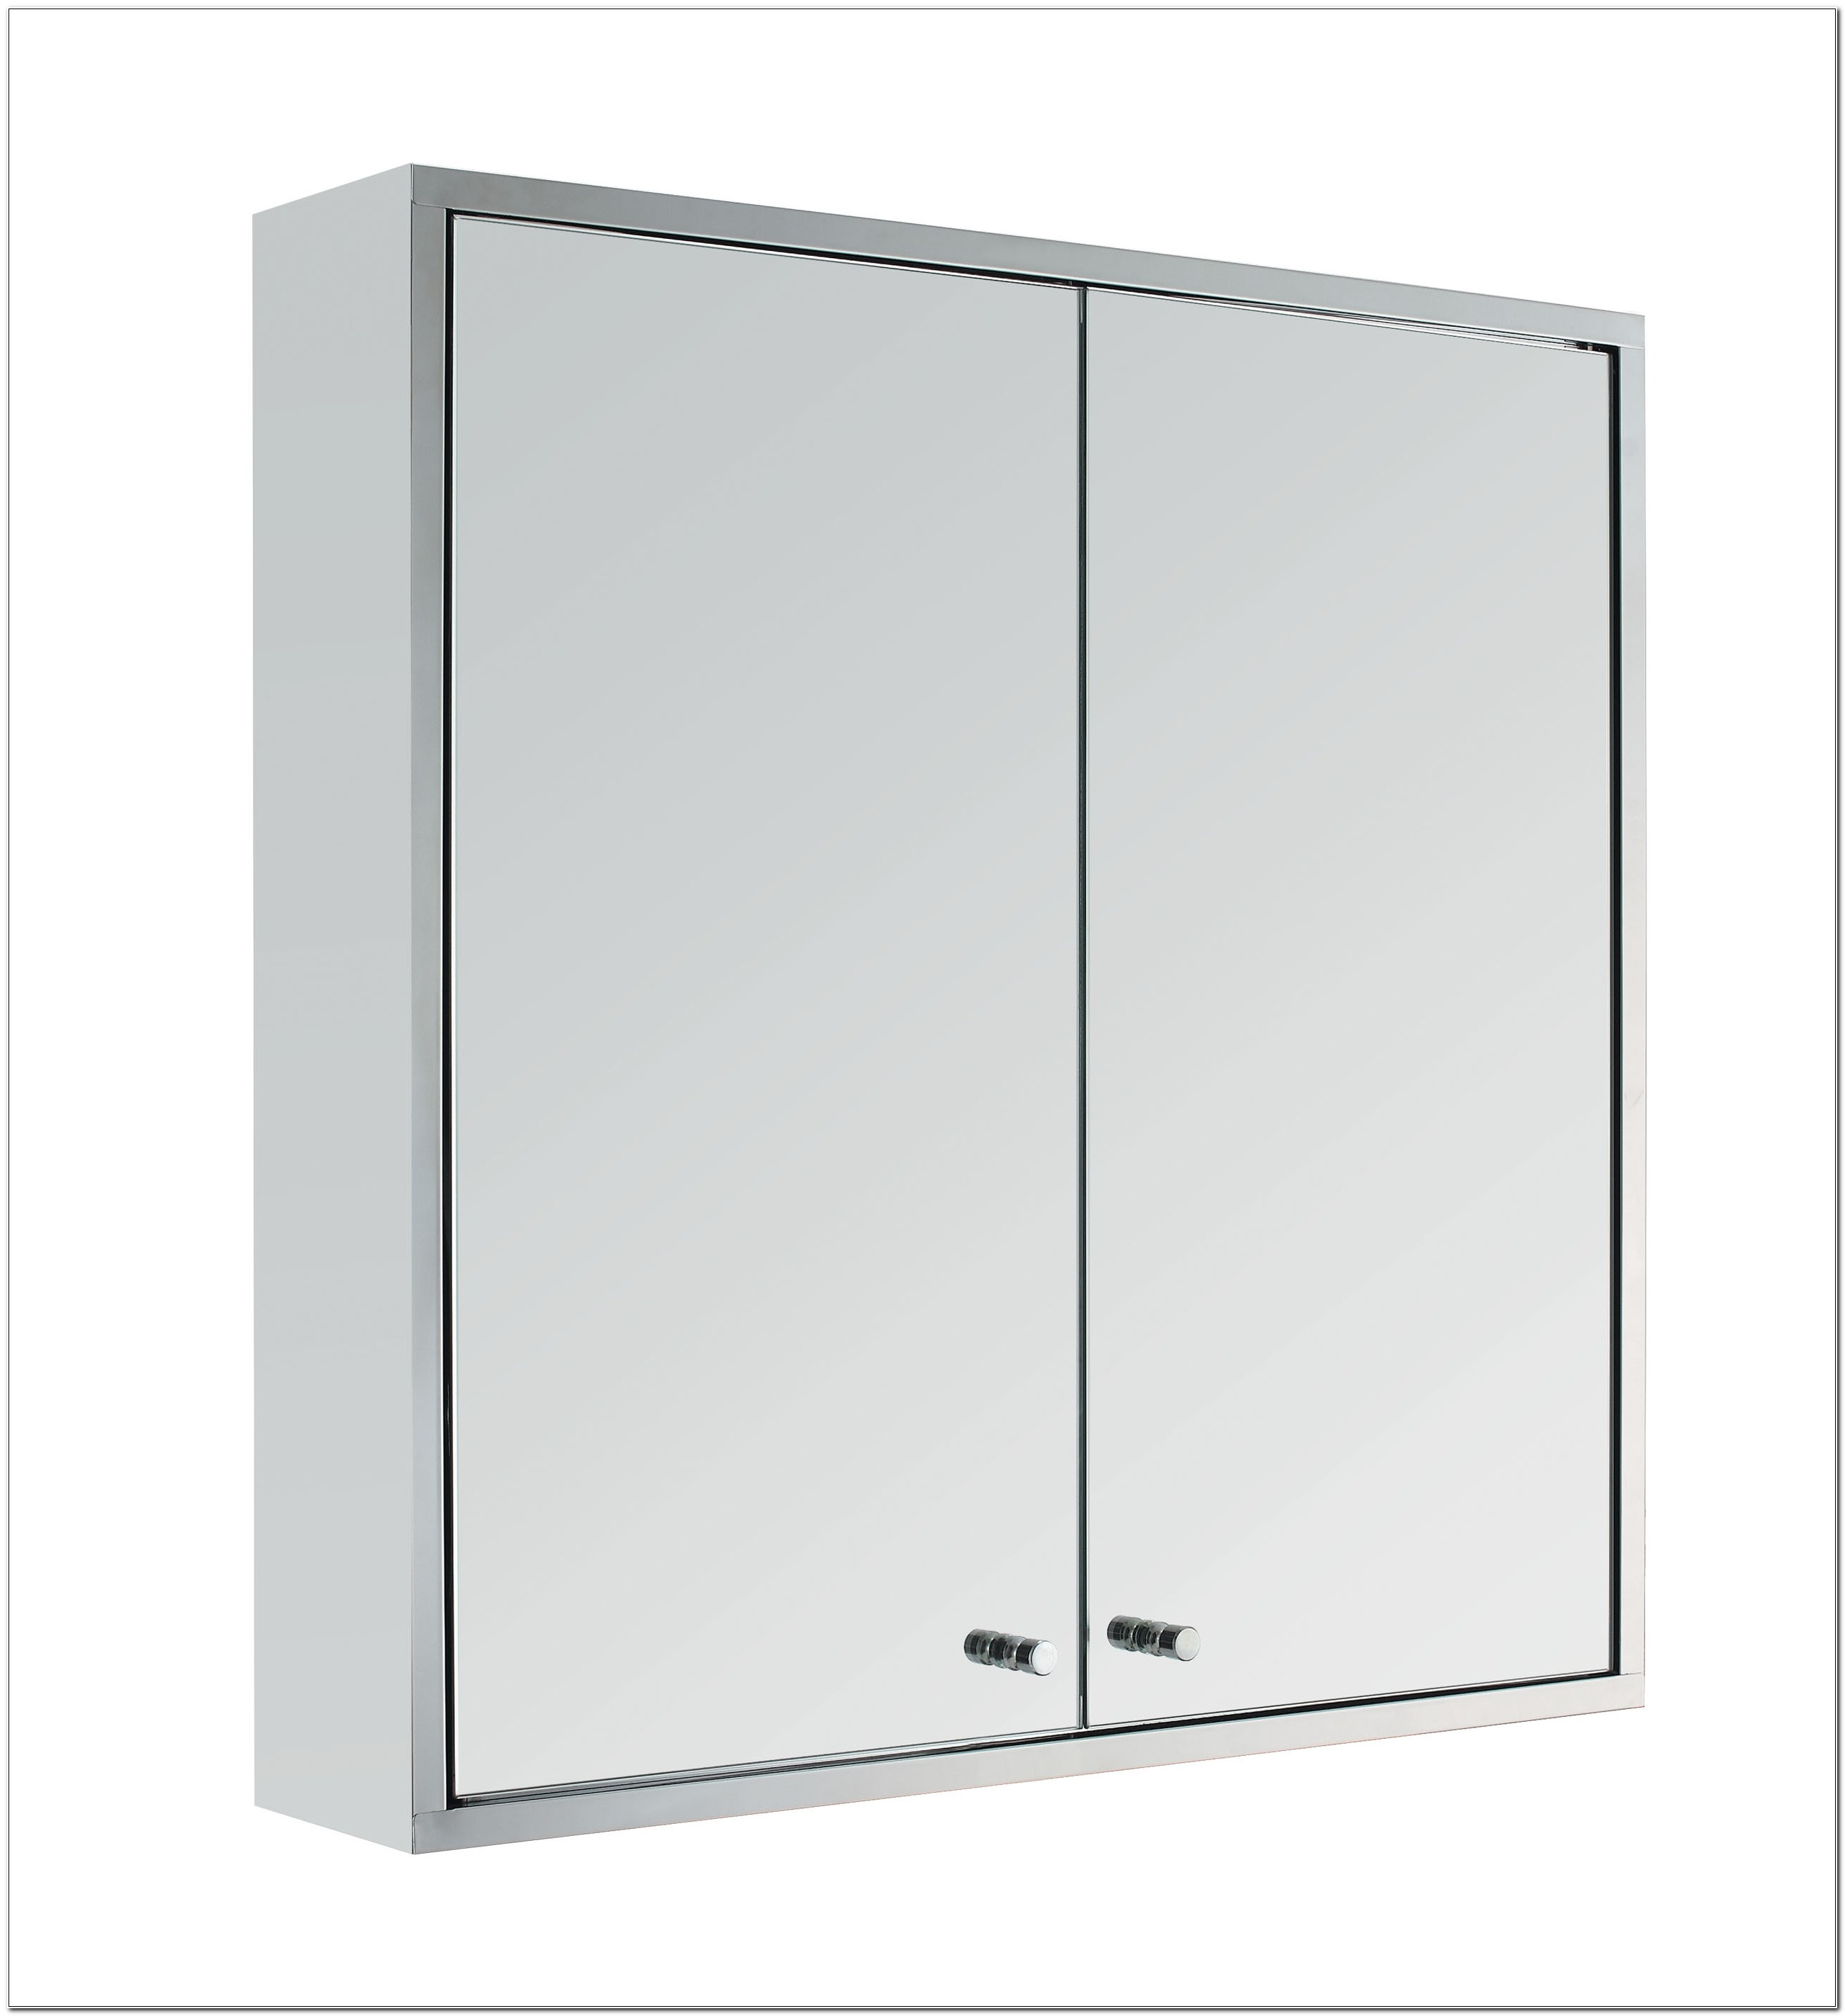 Stainless Steel Mirrored Bathroom Wall Cabinets